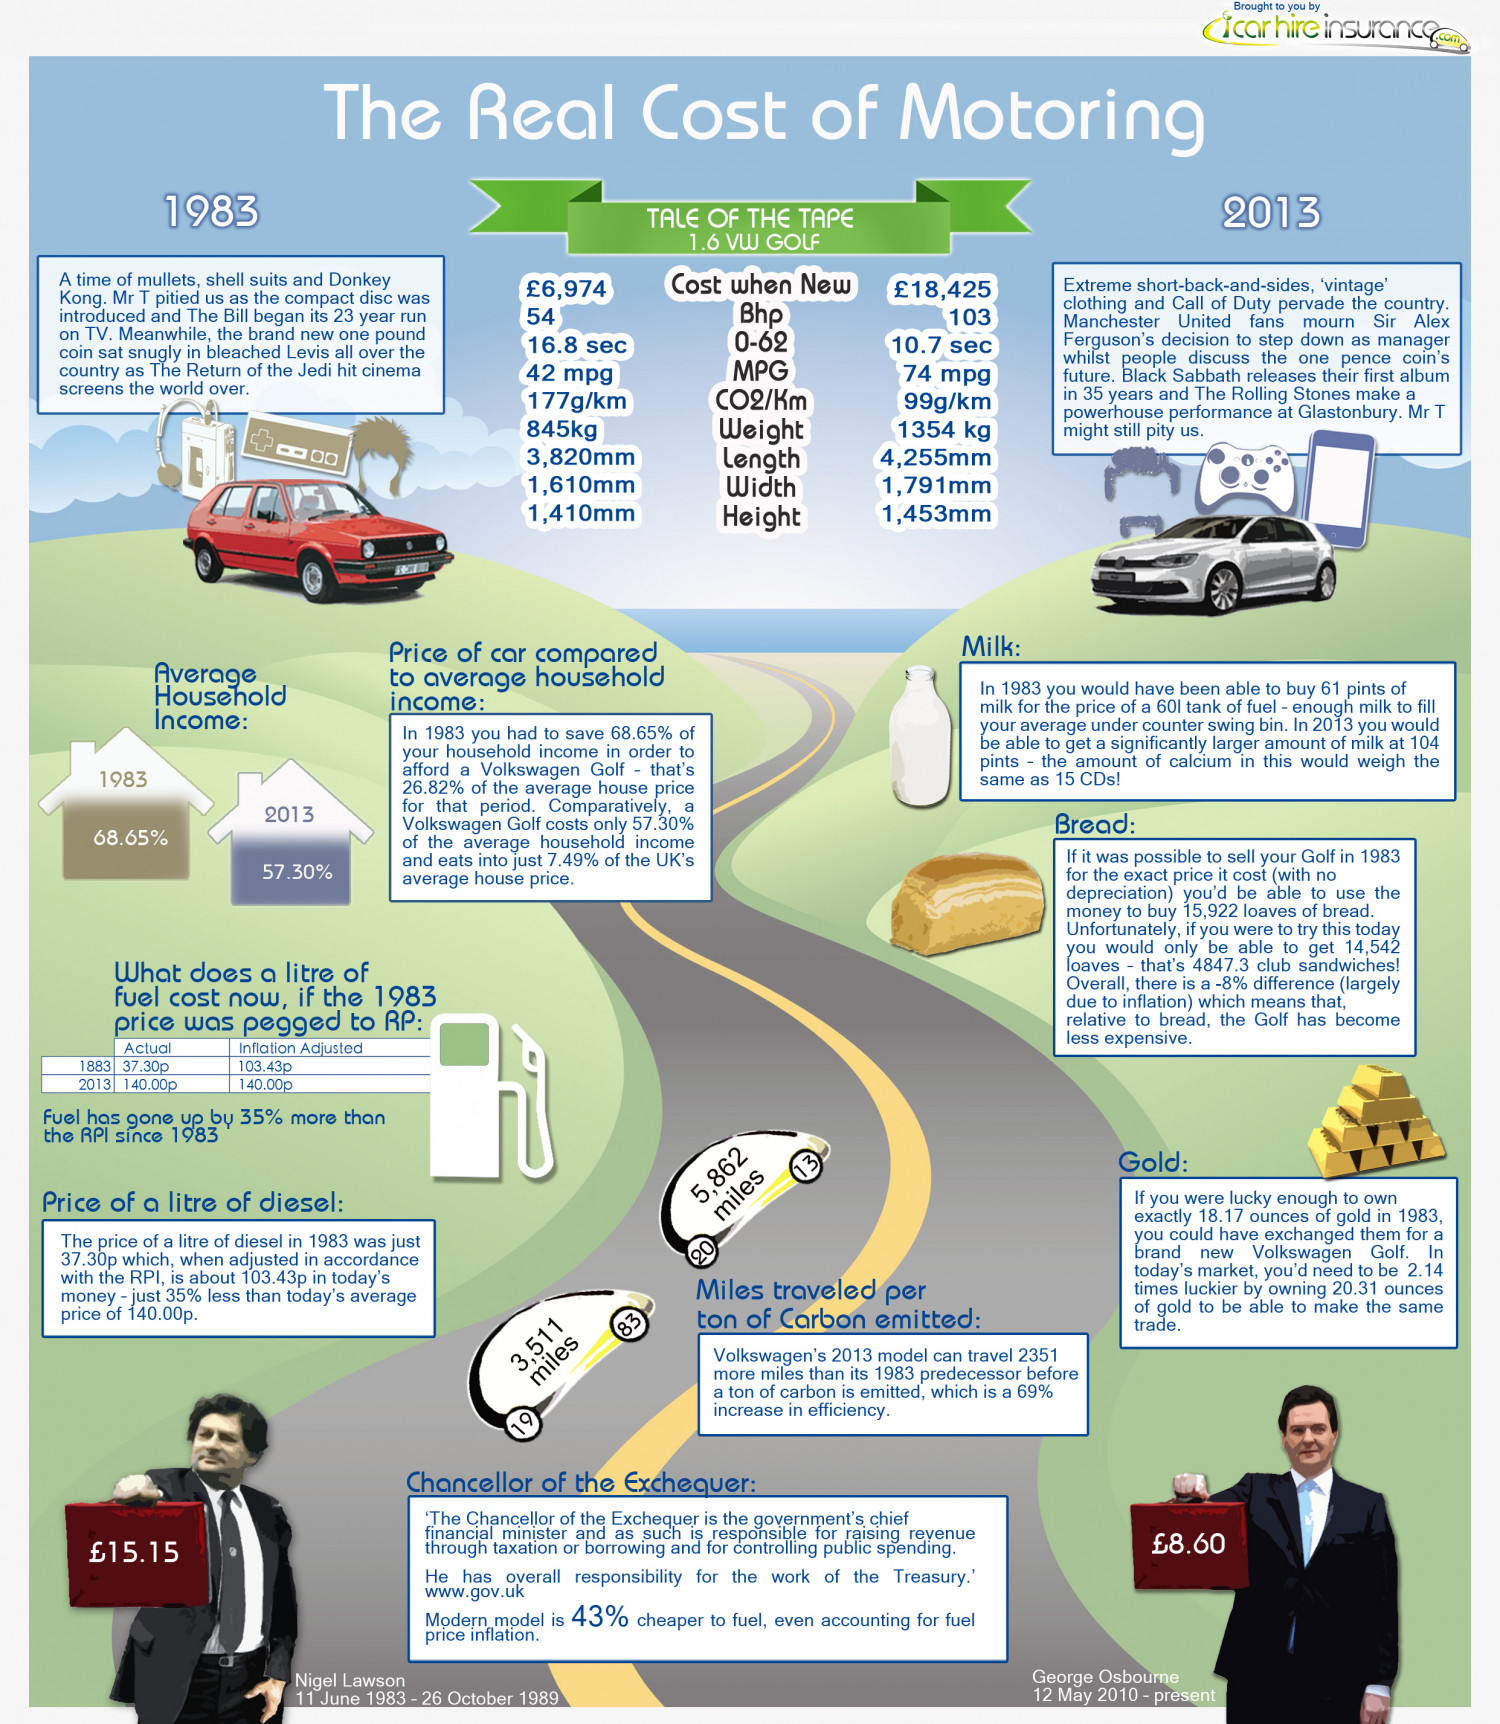 The Real Cost of Motoring  Infographic